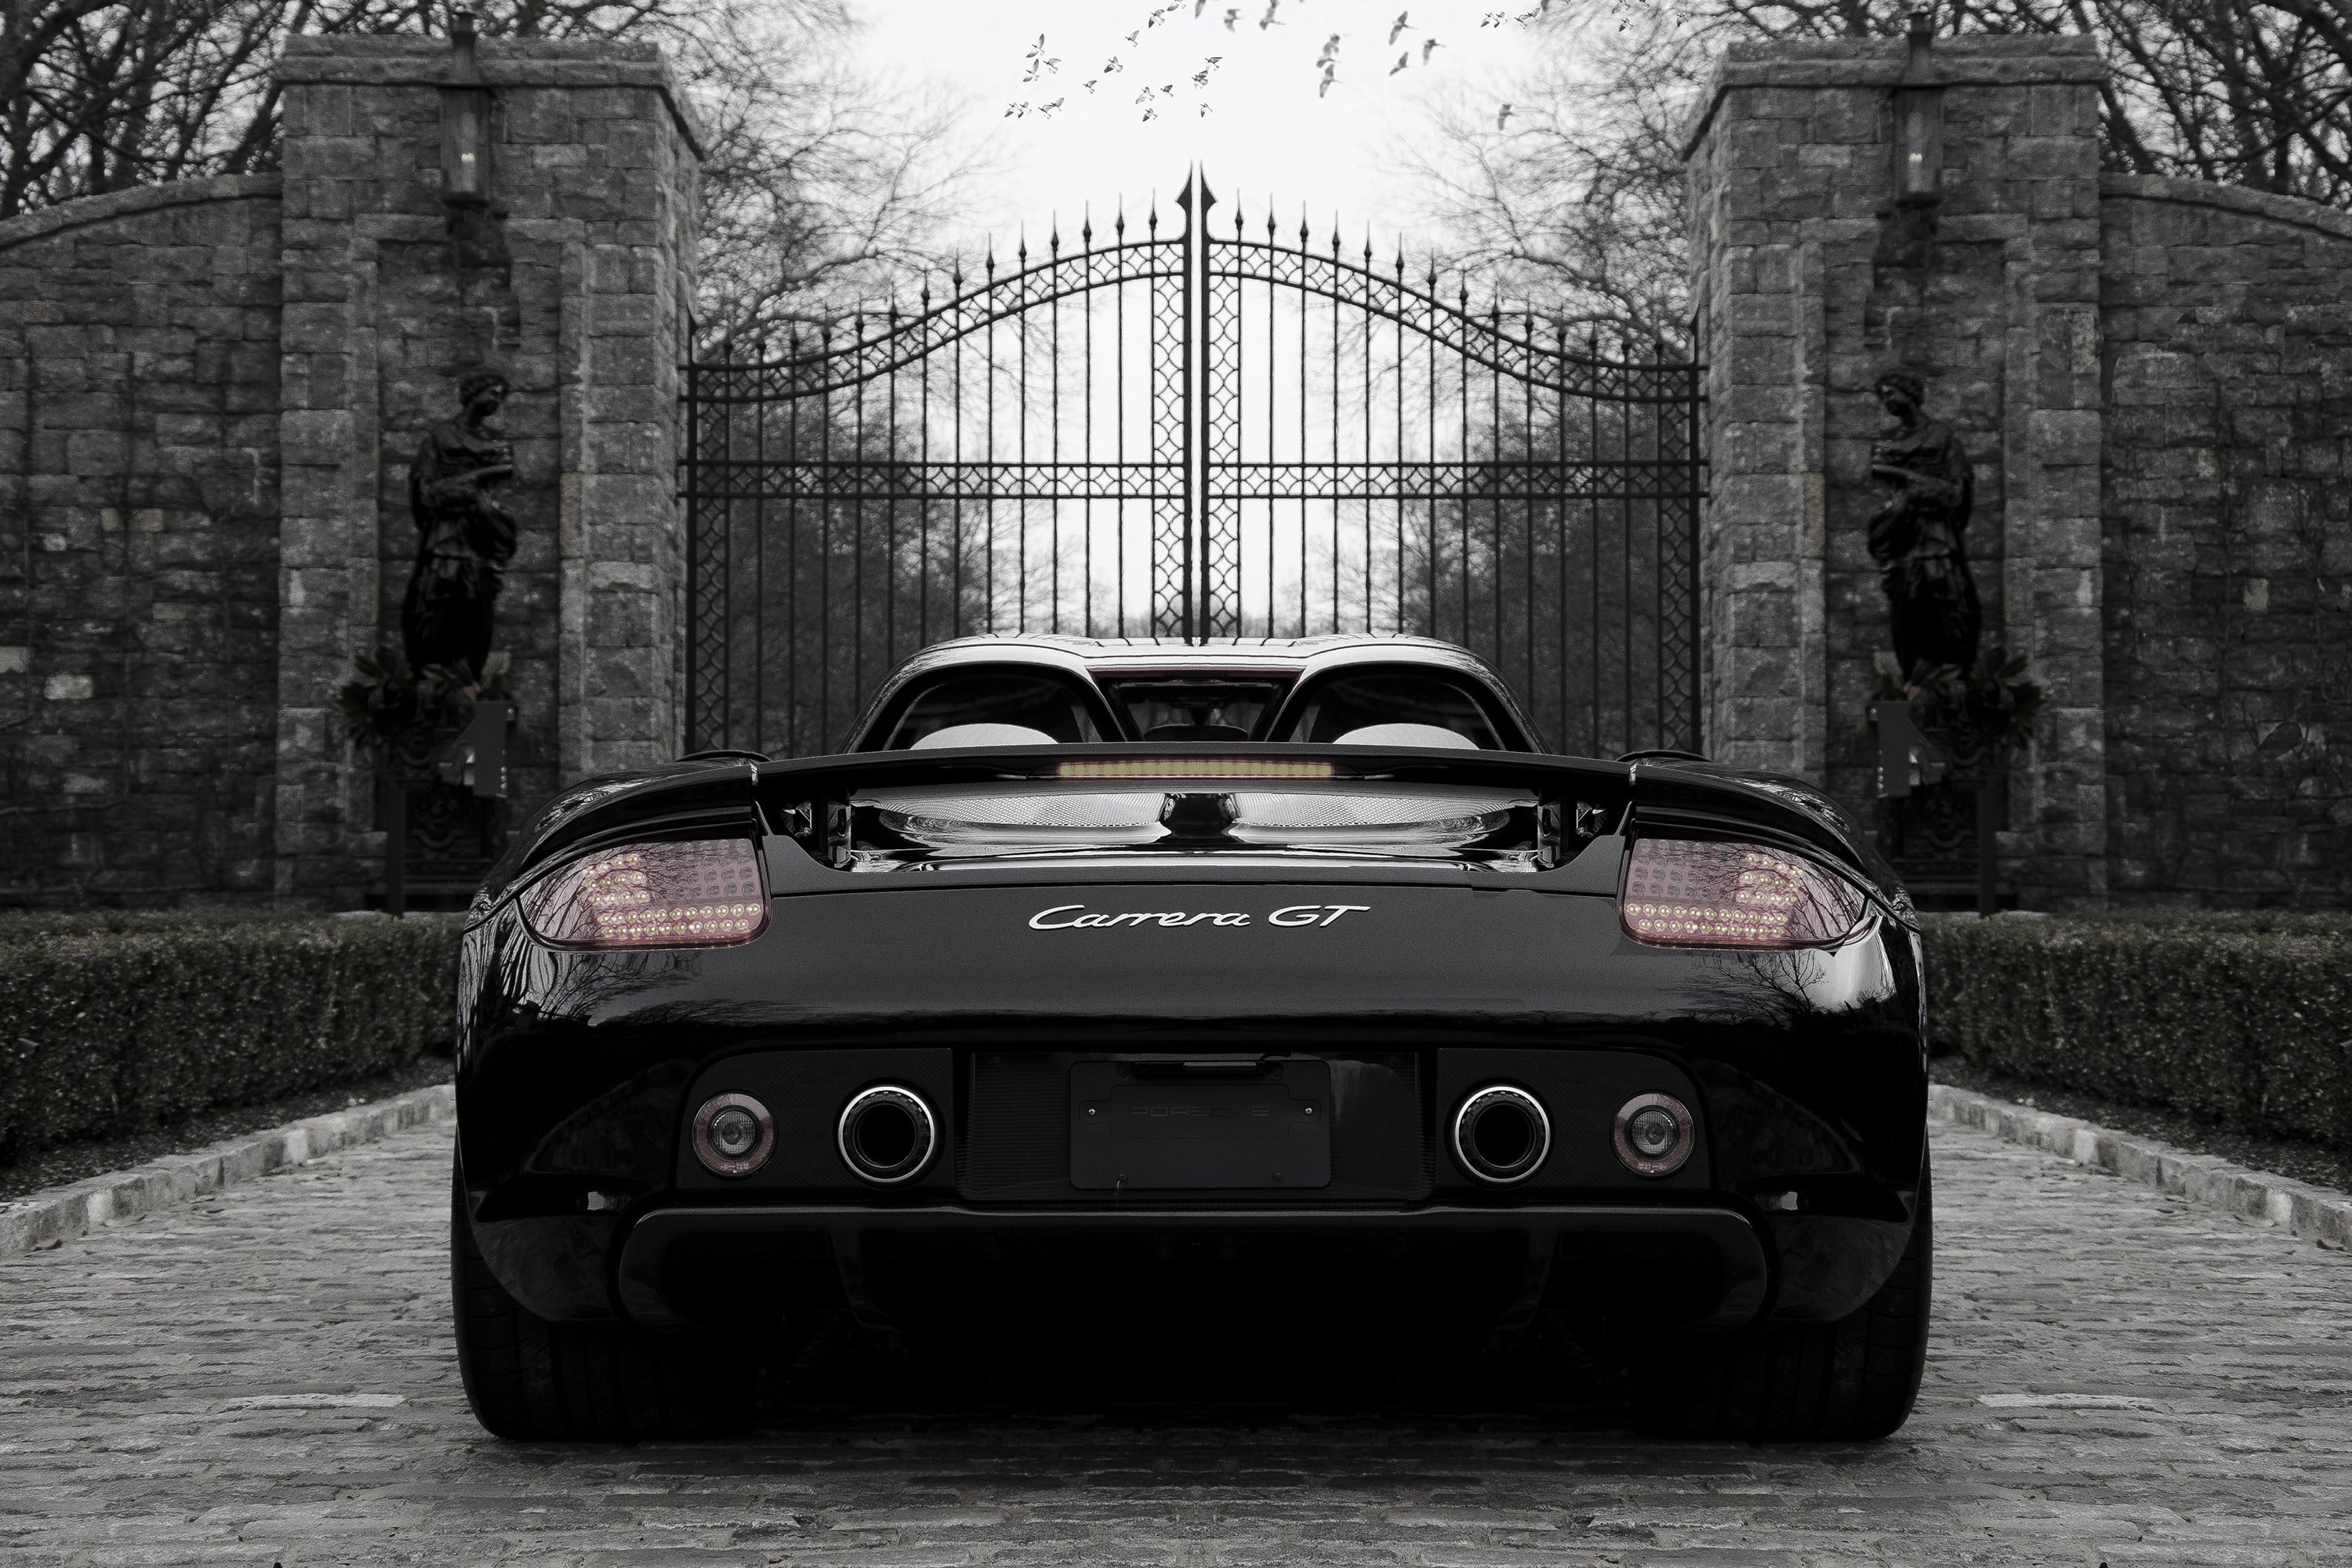 Porsche Carrera GT Desktop wallpaper